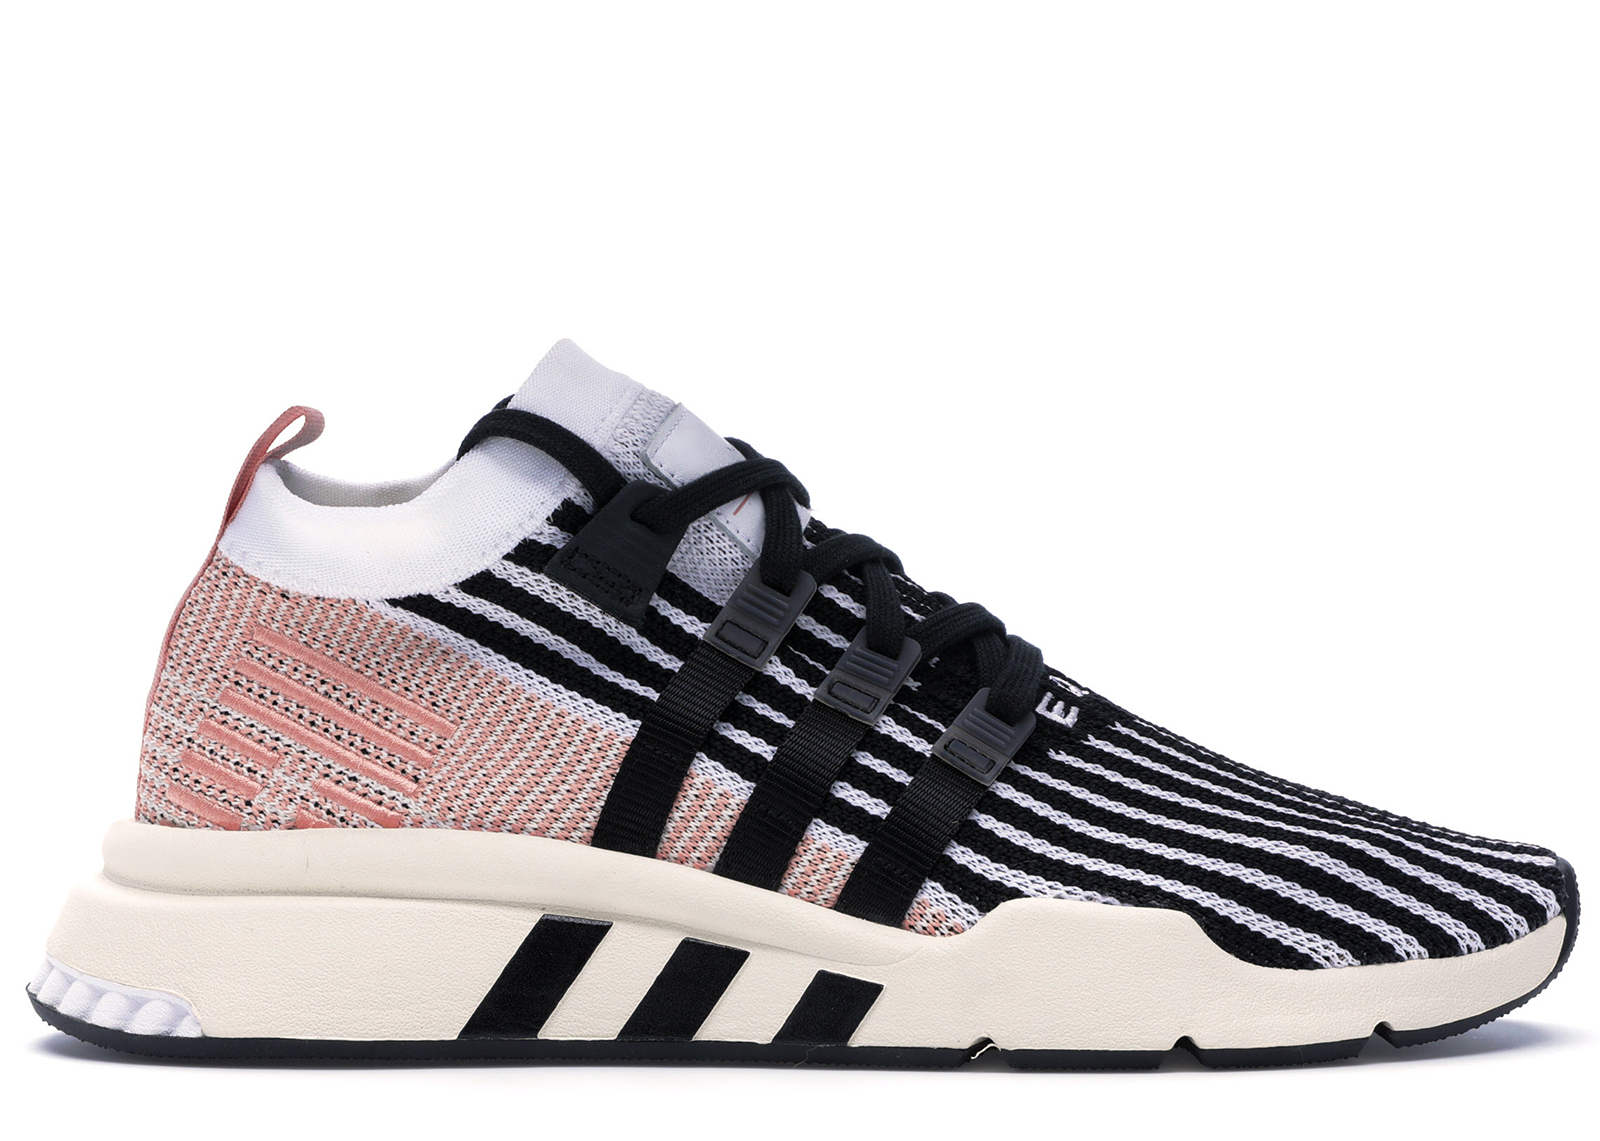 adidas EQT Support Mid Adv Core Black Trace Pink